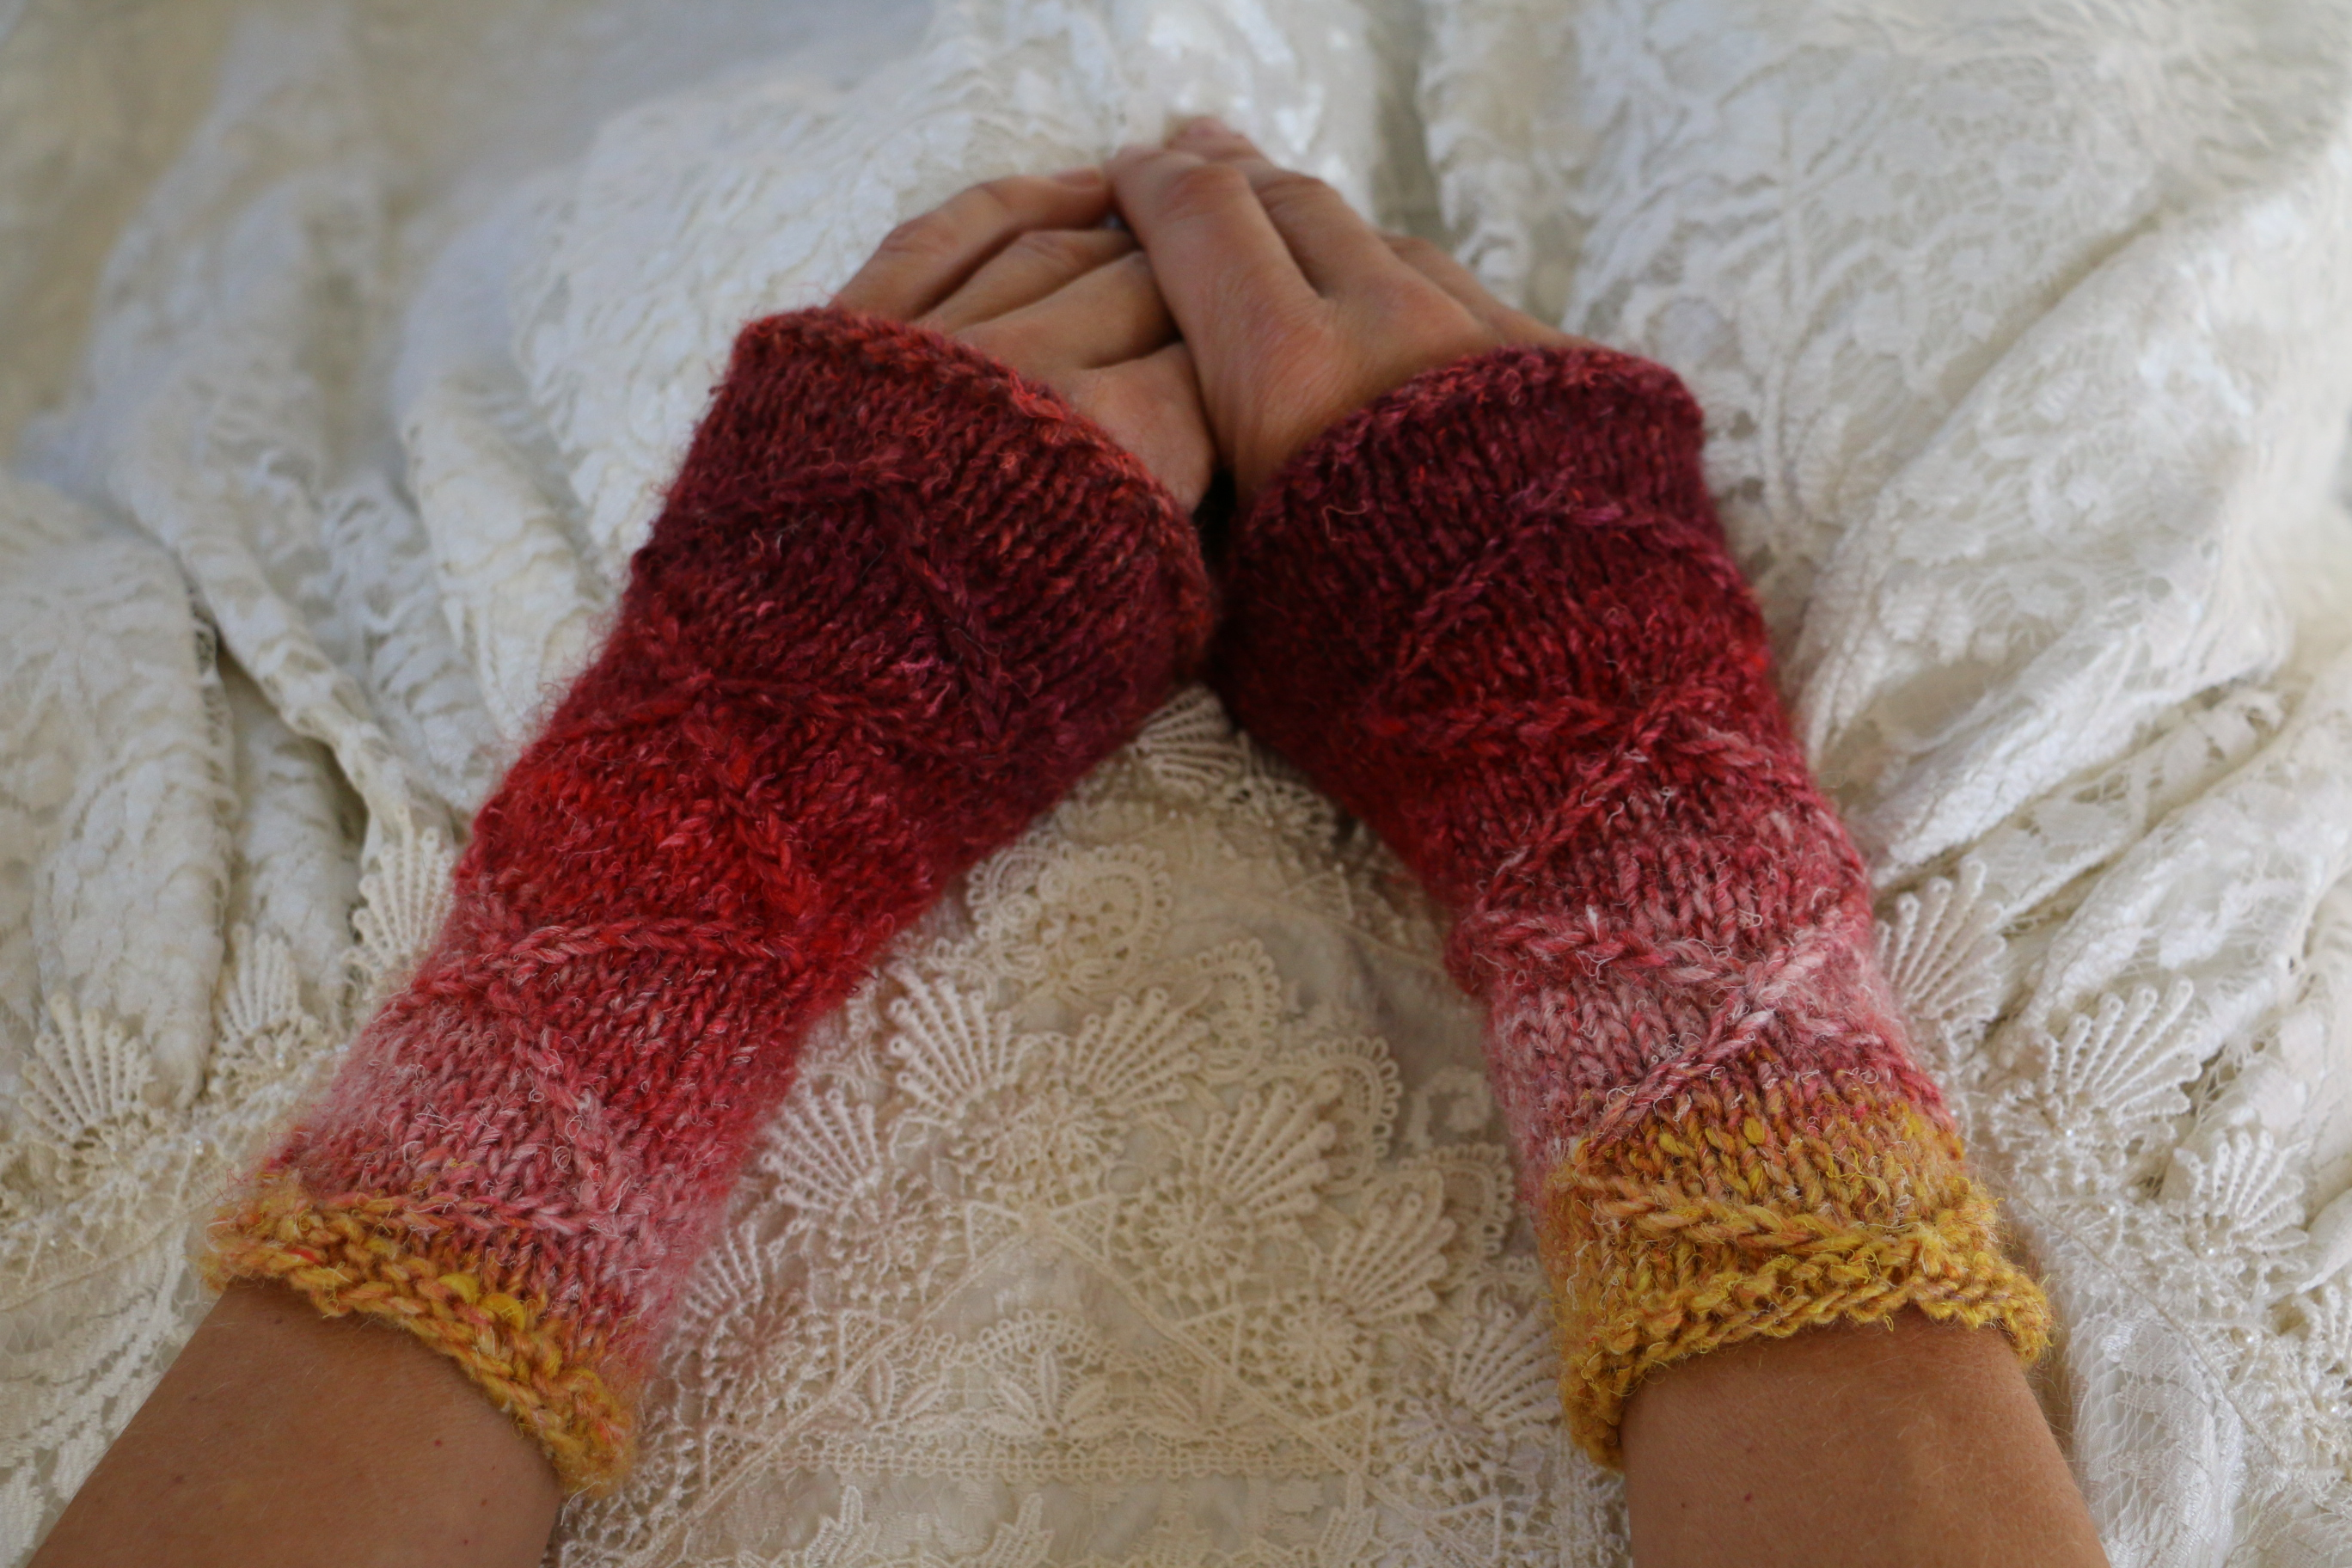 Whatever Wrist Warmers - knitting pattern